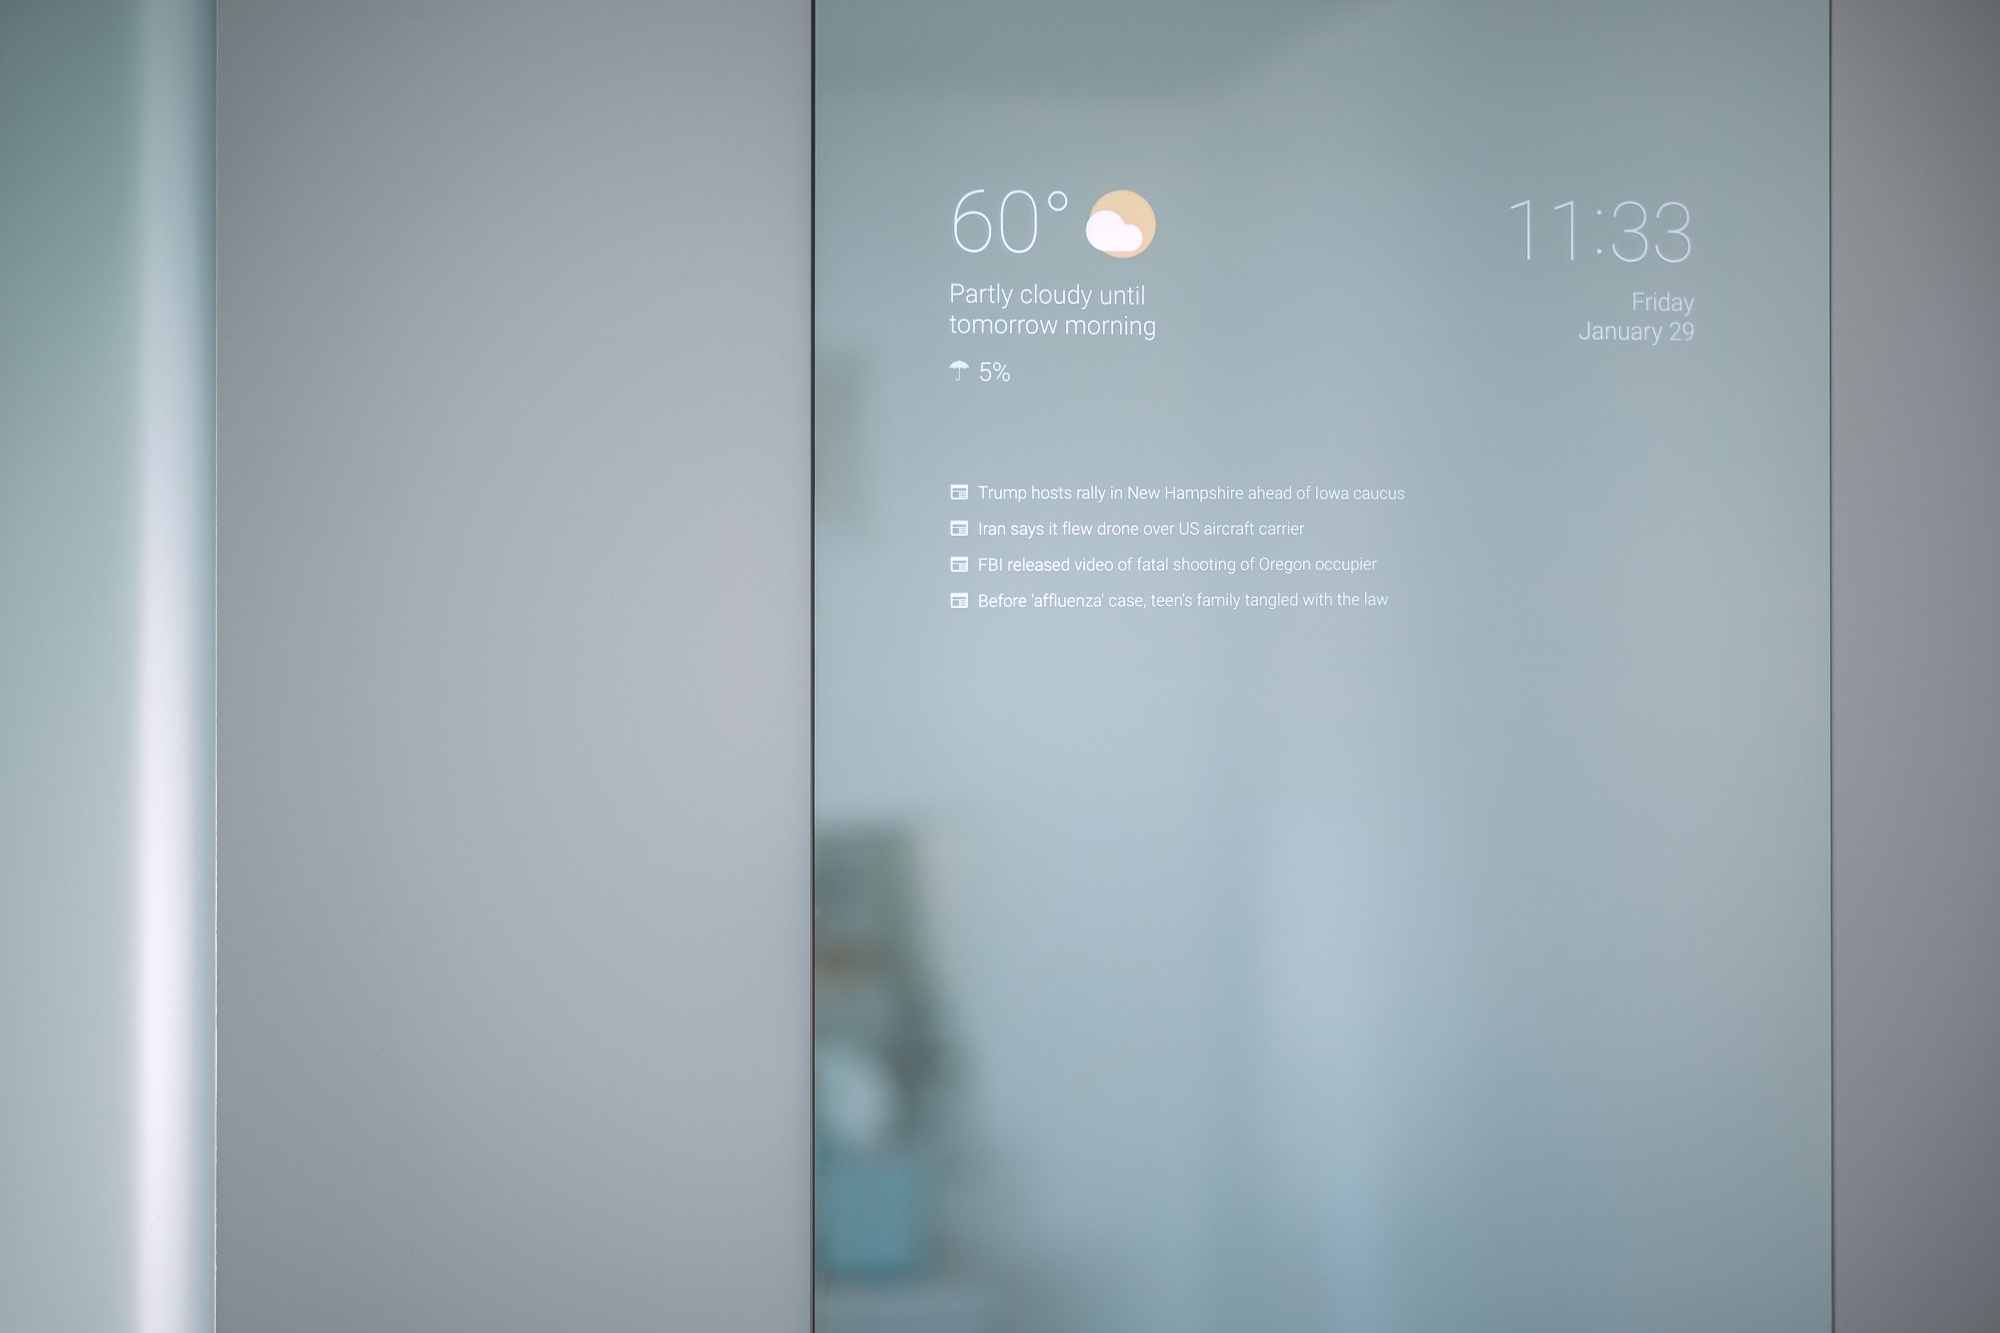 Google Software Engineer Constructs This Mirror From the Future